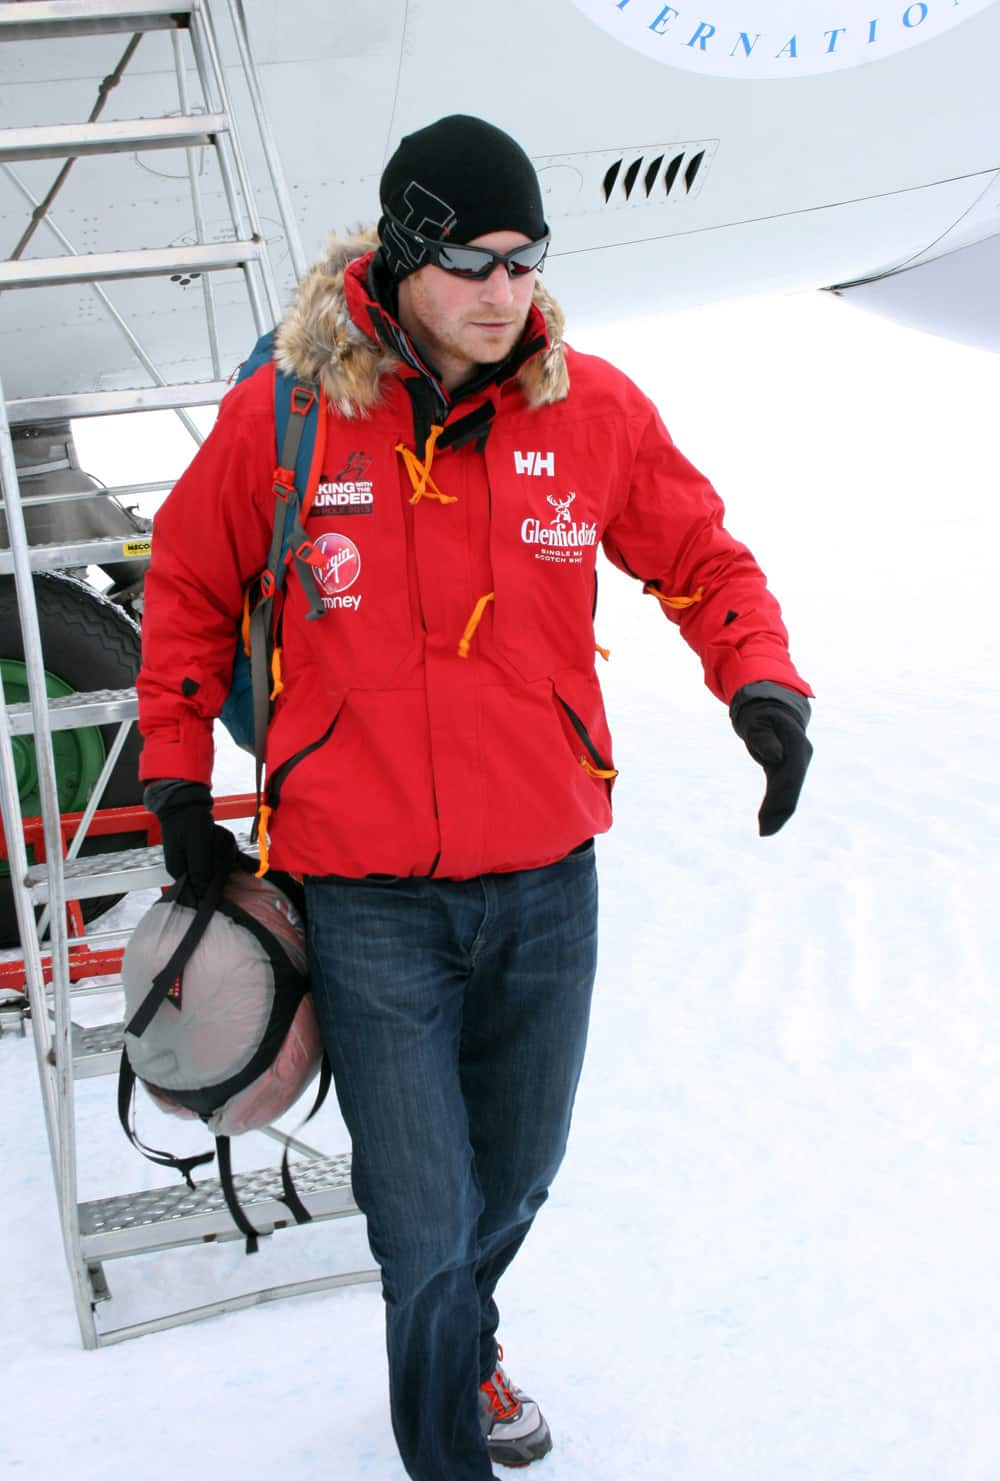 Britain`s Prince Harry, partron of the UK team, arrives in Novo, Antarctica to take part in the South Pole Allied Challenge 2013 expedition.